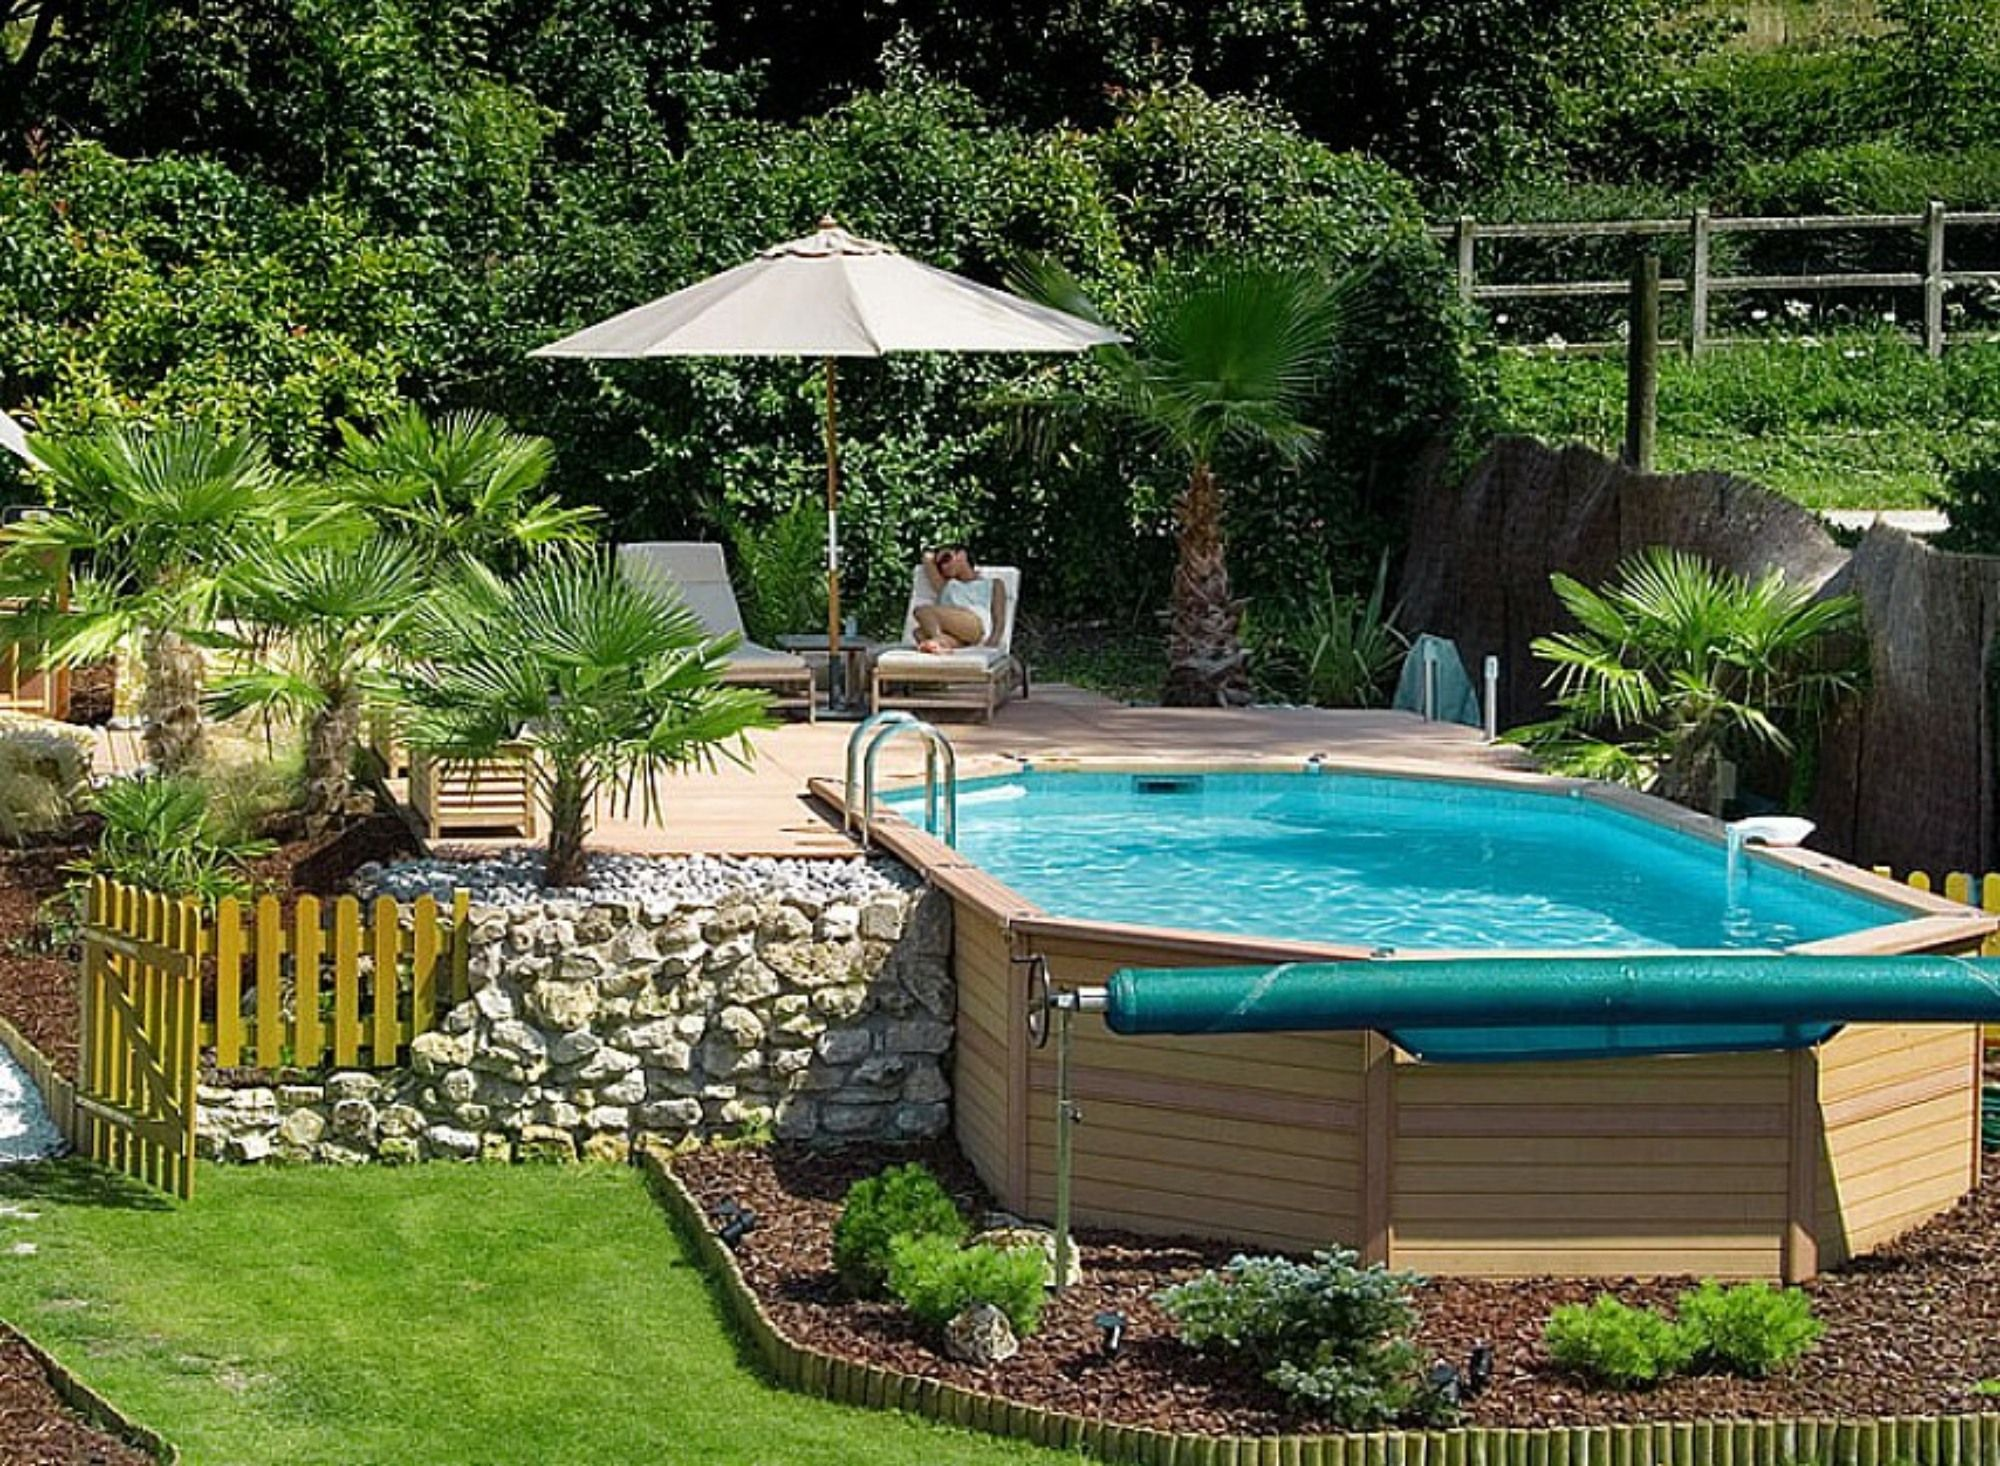 Modern garden design with pool - 40 Uniquely Awesome Above Ground Pools With Decks